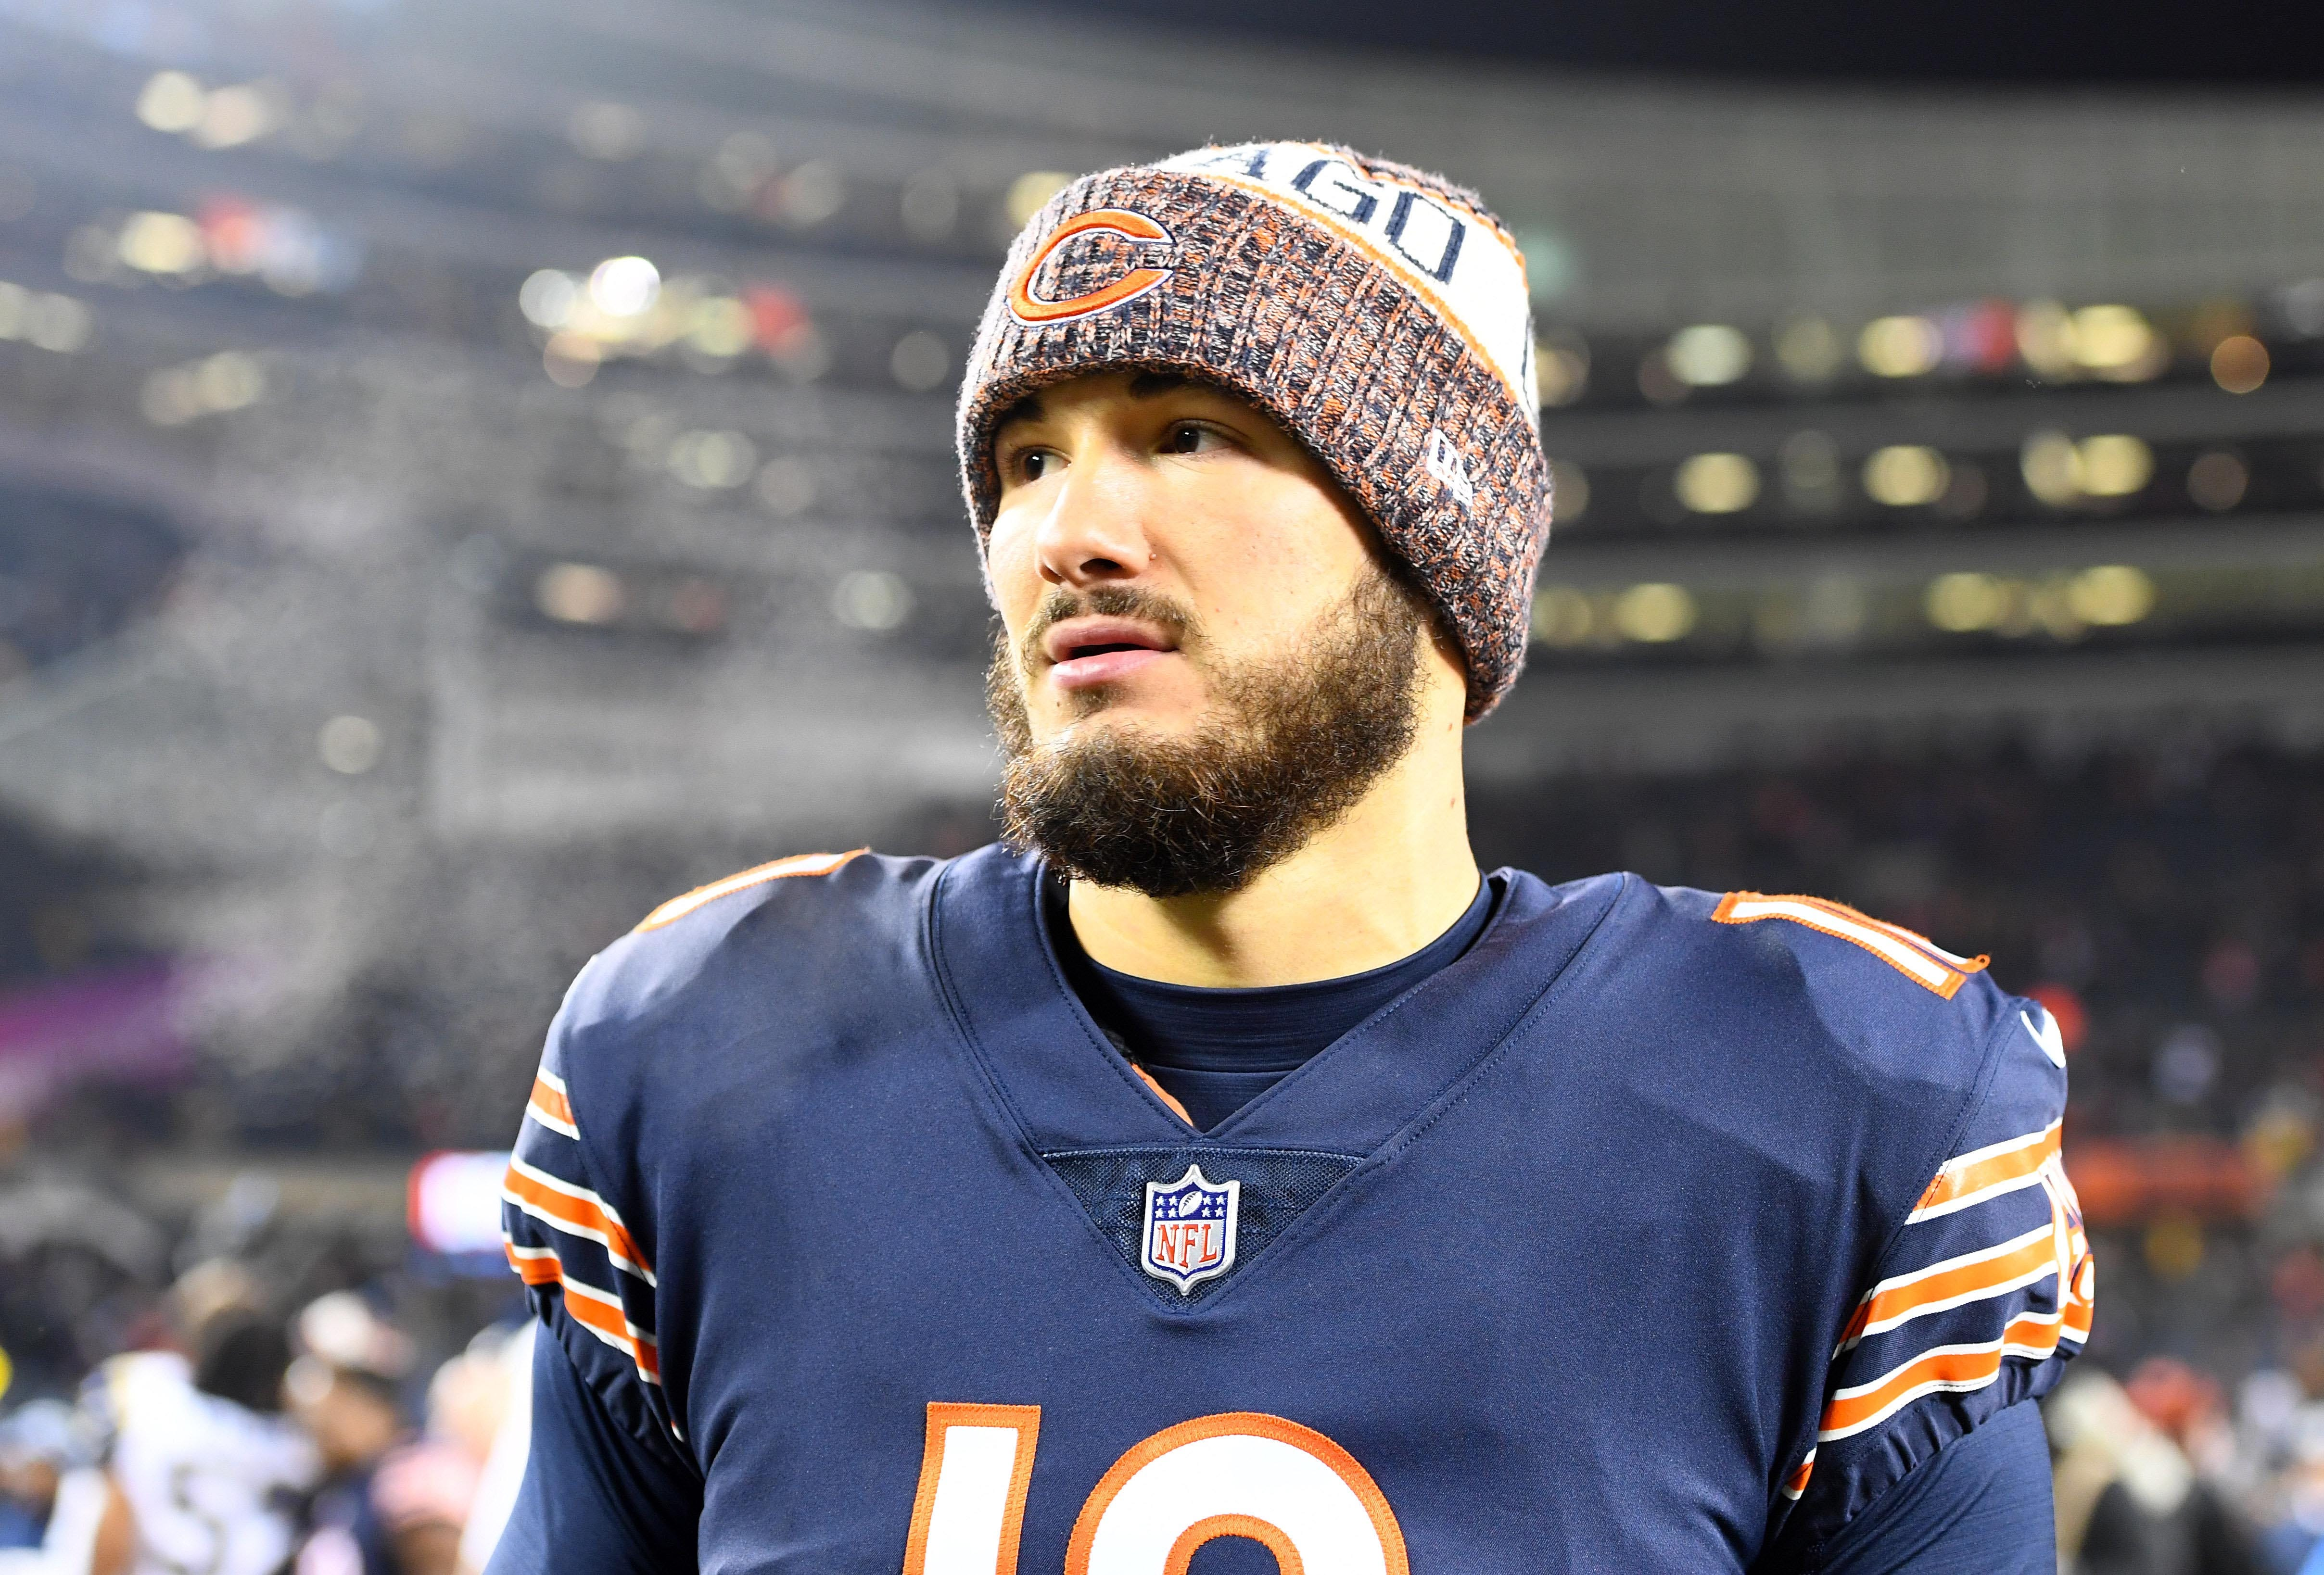 Opinion: Chicago Bears QB Mitchell Trubisky shouldn't be the only one losing his job